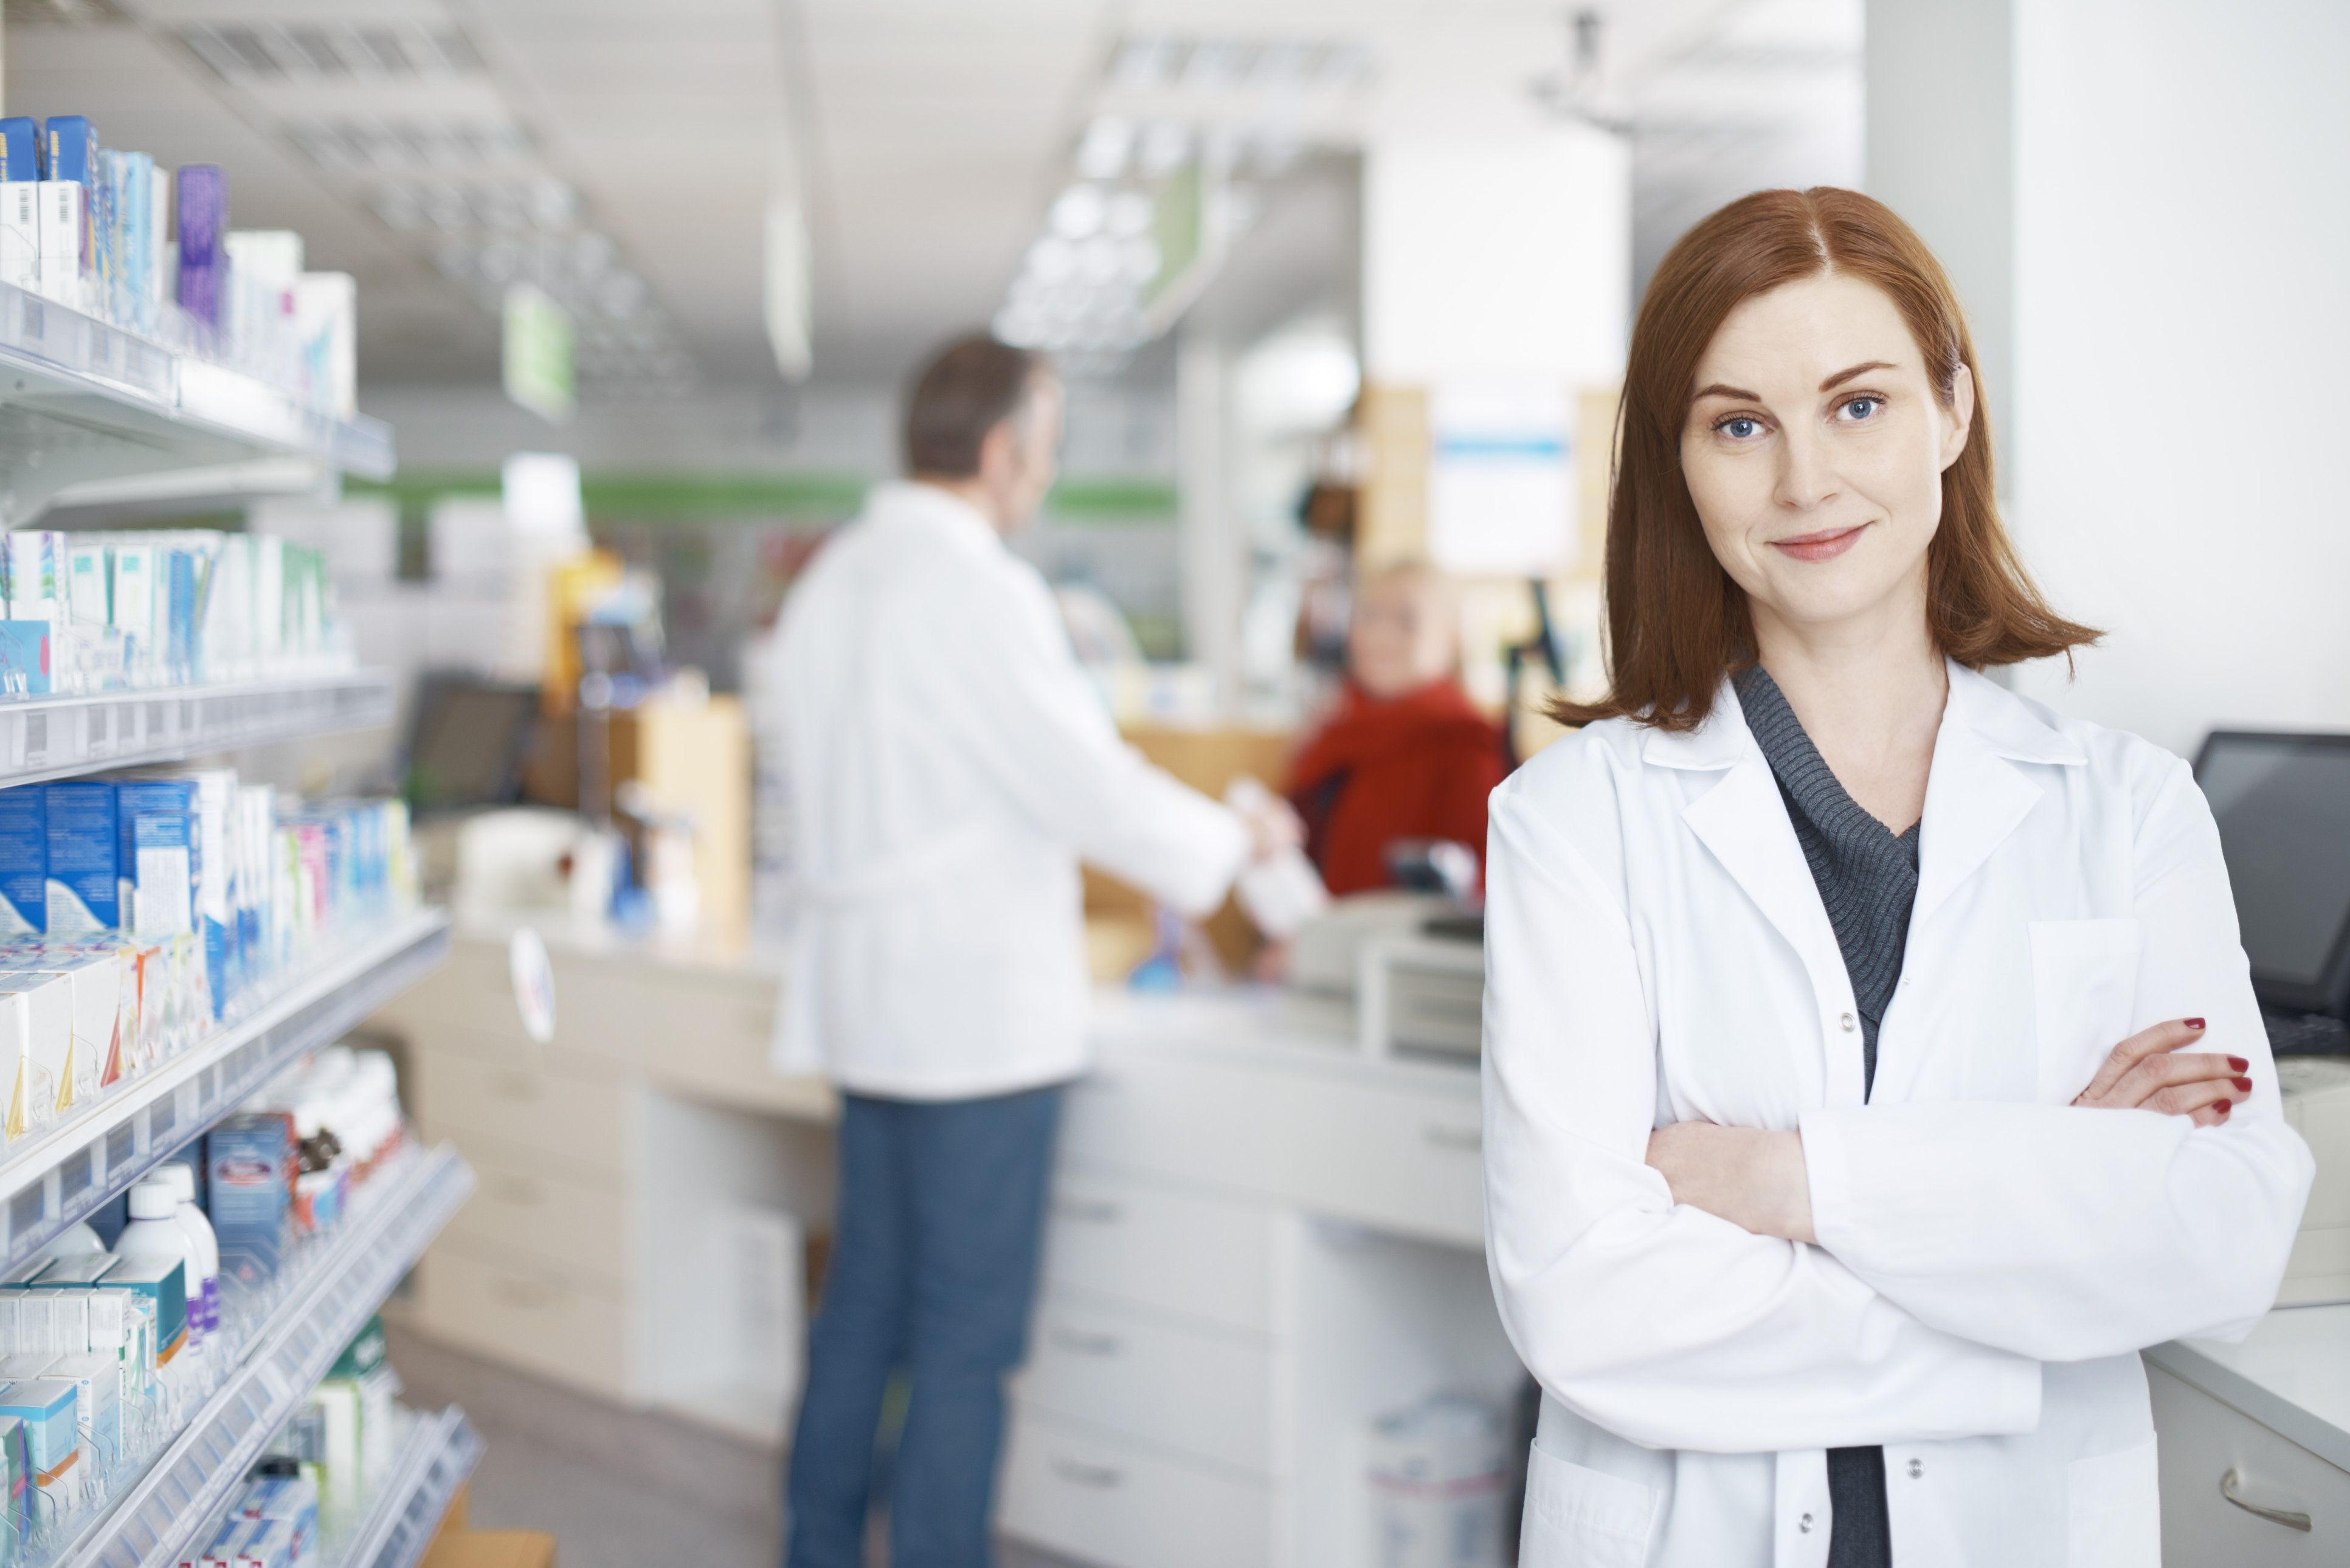 8 Questions To Ask Your Pharmacist  Huffpost Life. College Online Phoenix University. Online Sharing Documents New Marketing Trends. Brian Center Wilson Nc Register A Free Domain. Reckless Driving Lawyer Tattoo Graphic Design. Best Web Hosting For Non Profit Organizations. Employment Attorney Colorado. Medical Coding Classes Richmond Va. Bankruptcy Court Southern District Of Florida